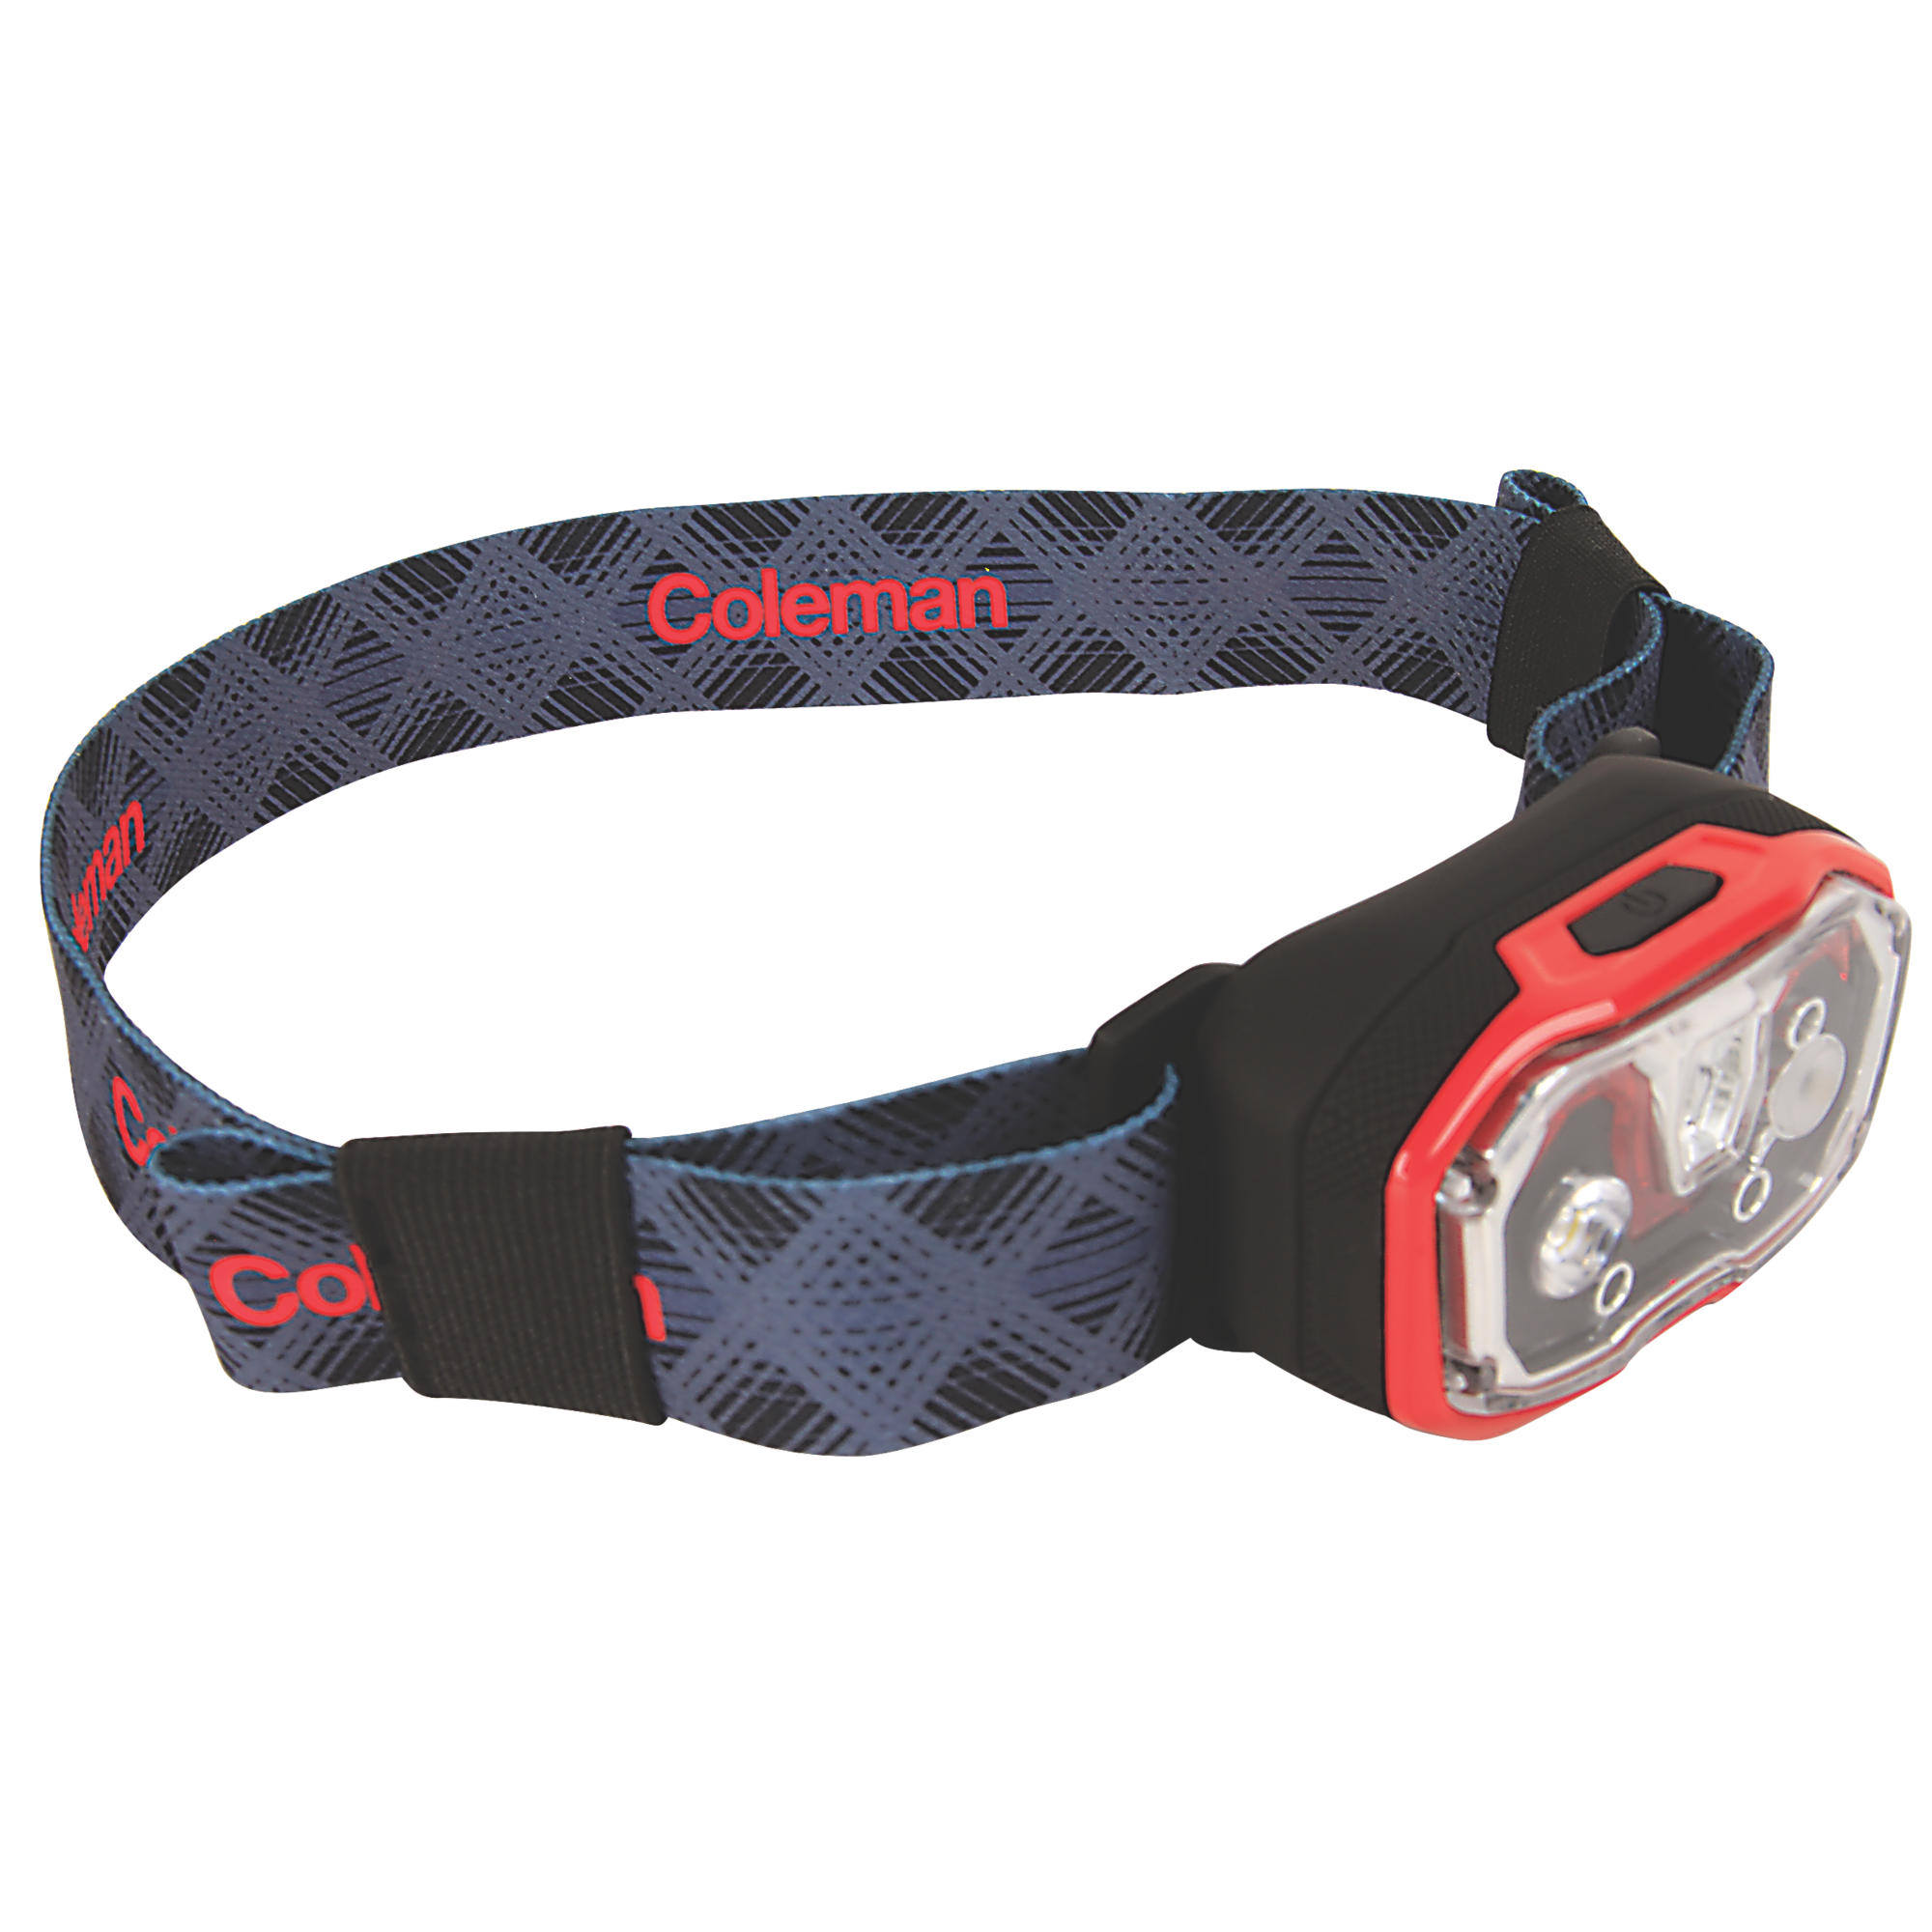 Conquer LED Headlamp